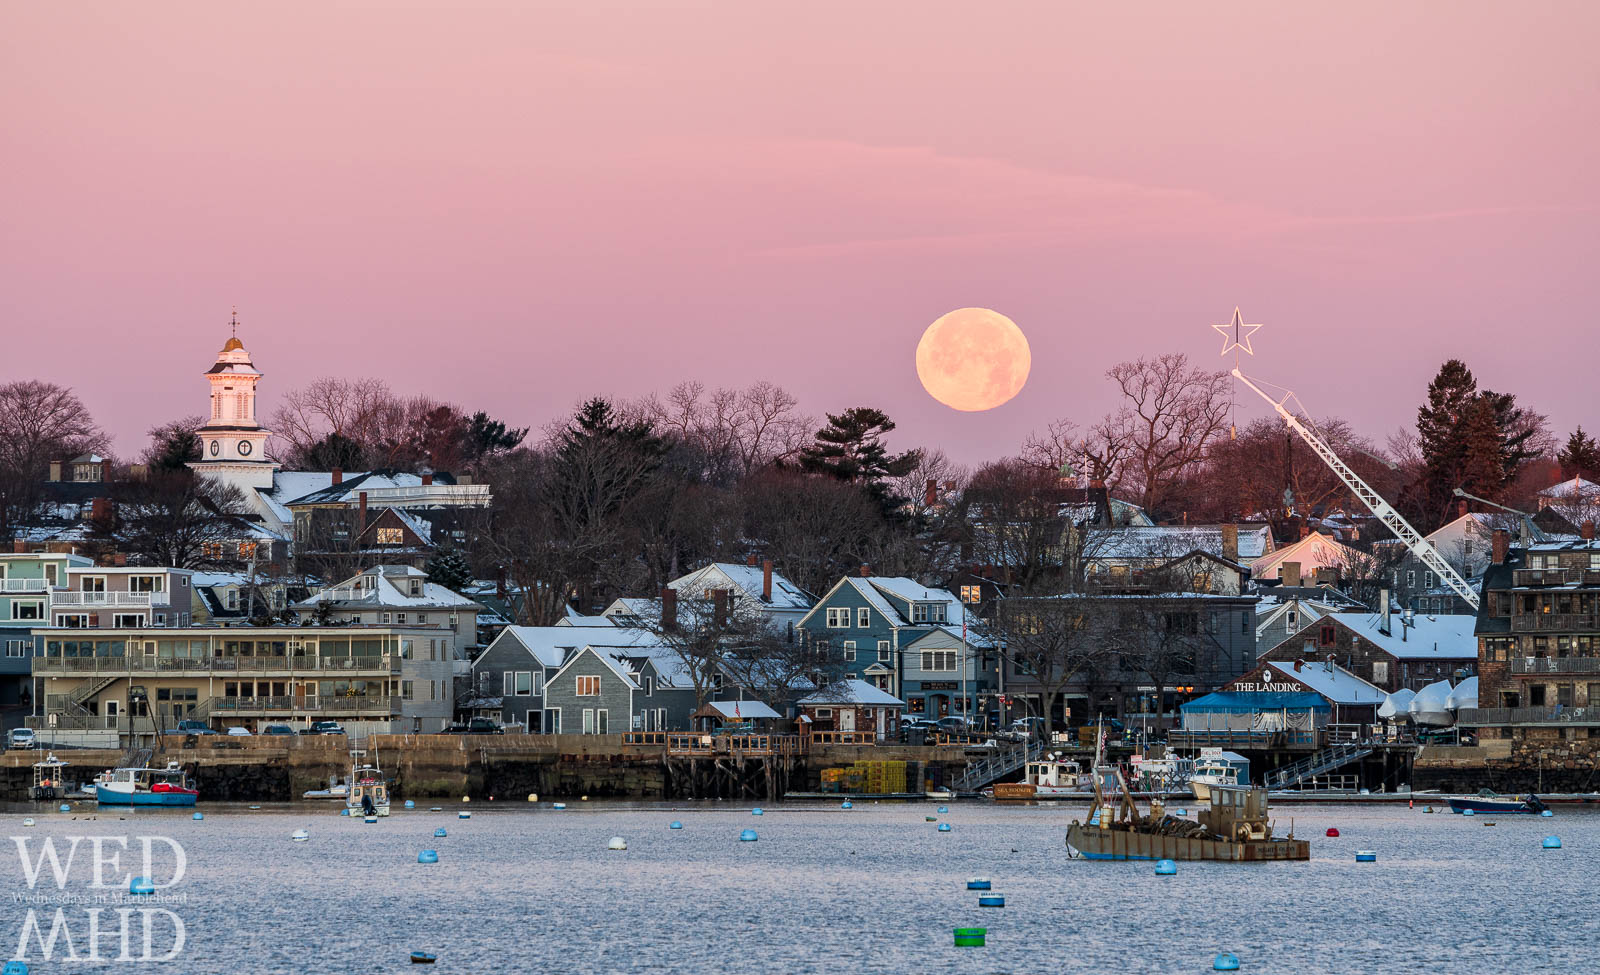 December's cold moon sets over State Street with a lit star suspended in the air and a nearly empty Marblehead harbor